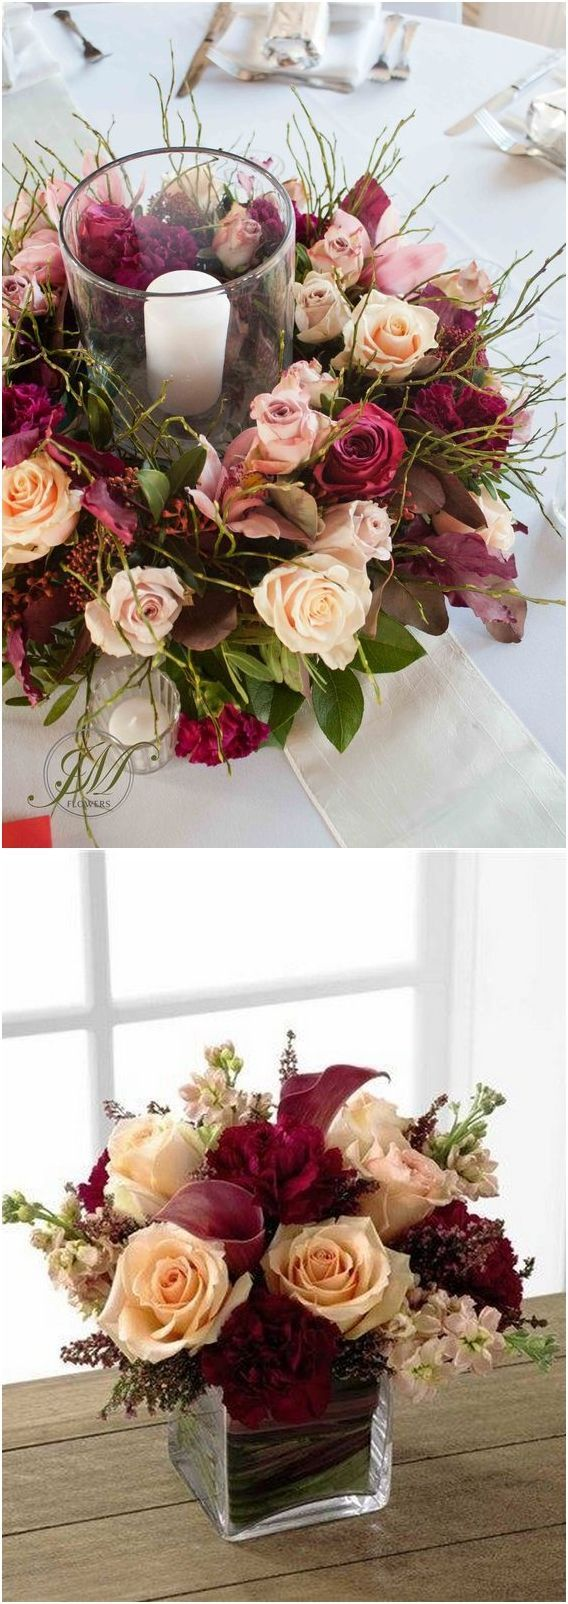 Pink and maroon wedding decor   Burgundy and Blush Fall Wedding Ideas  Baby shower ideas